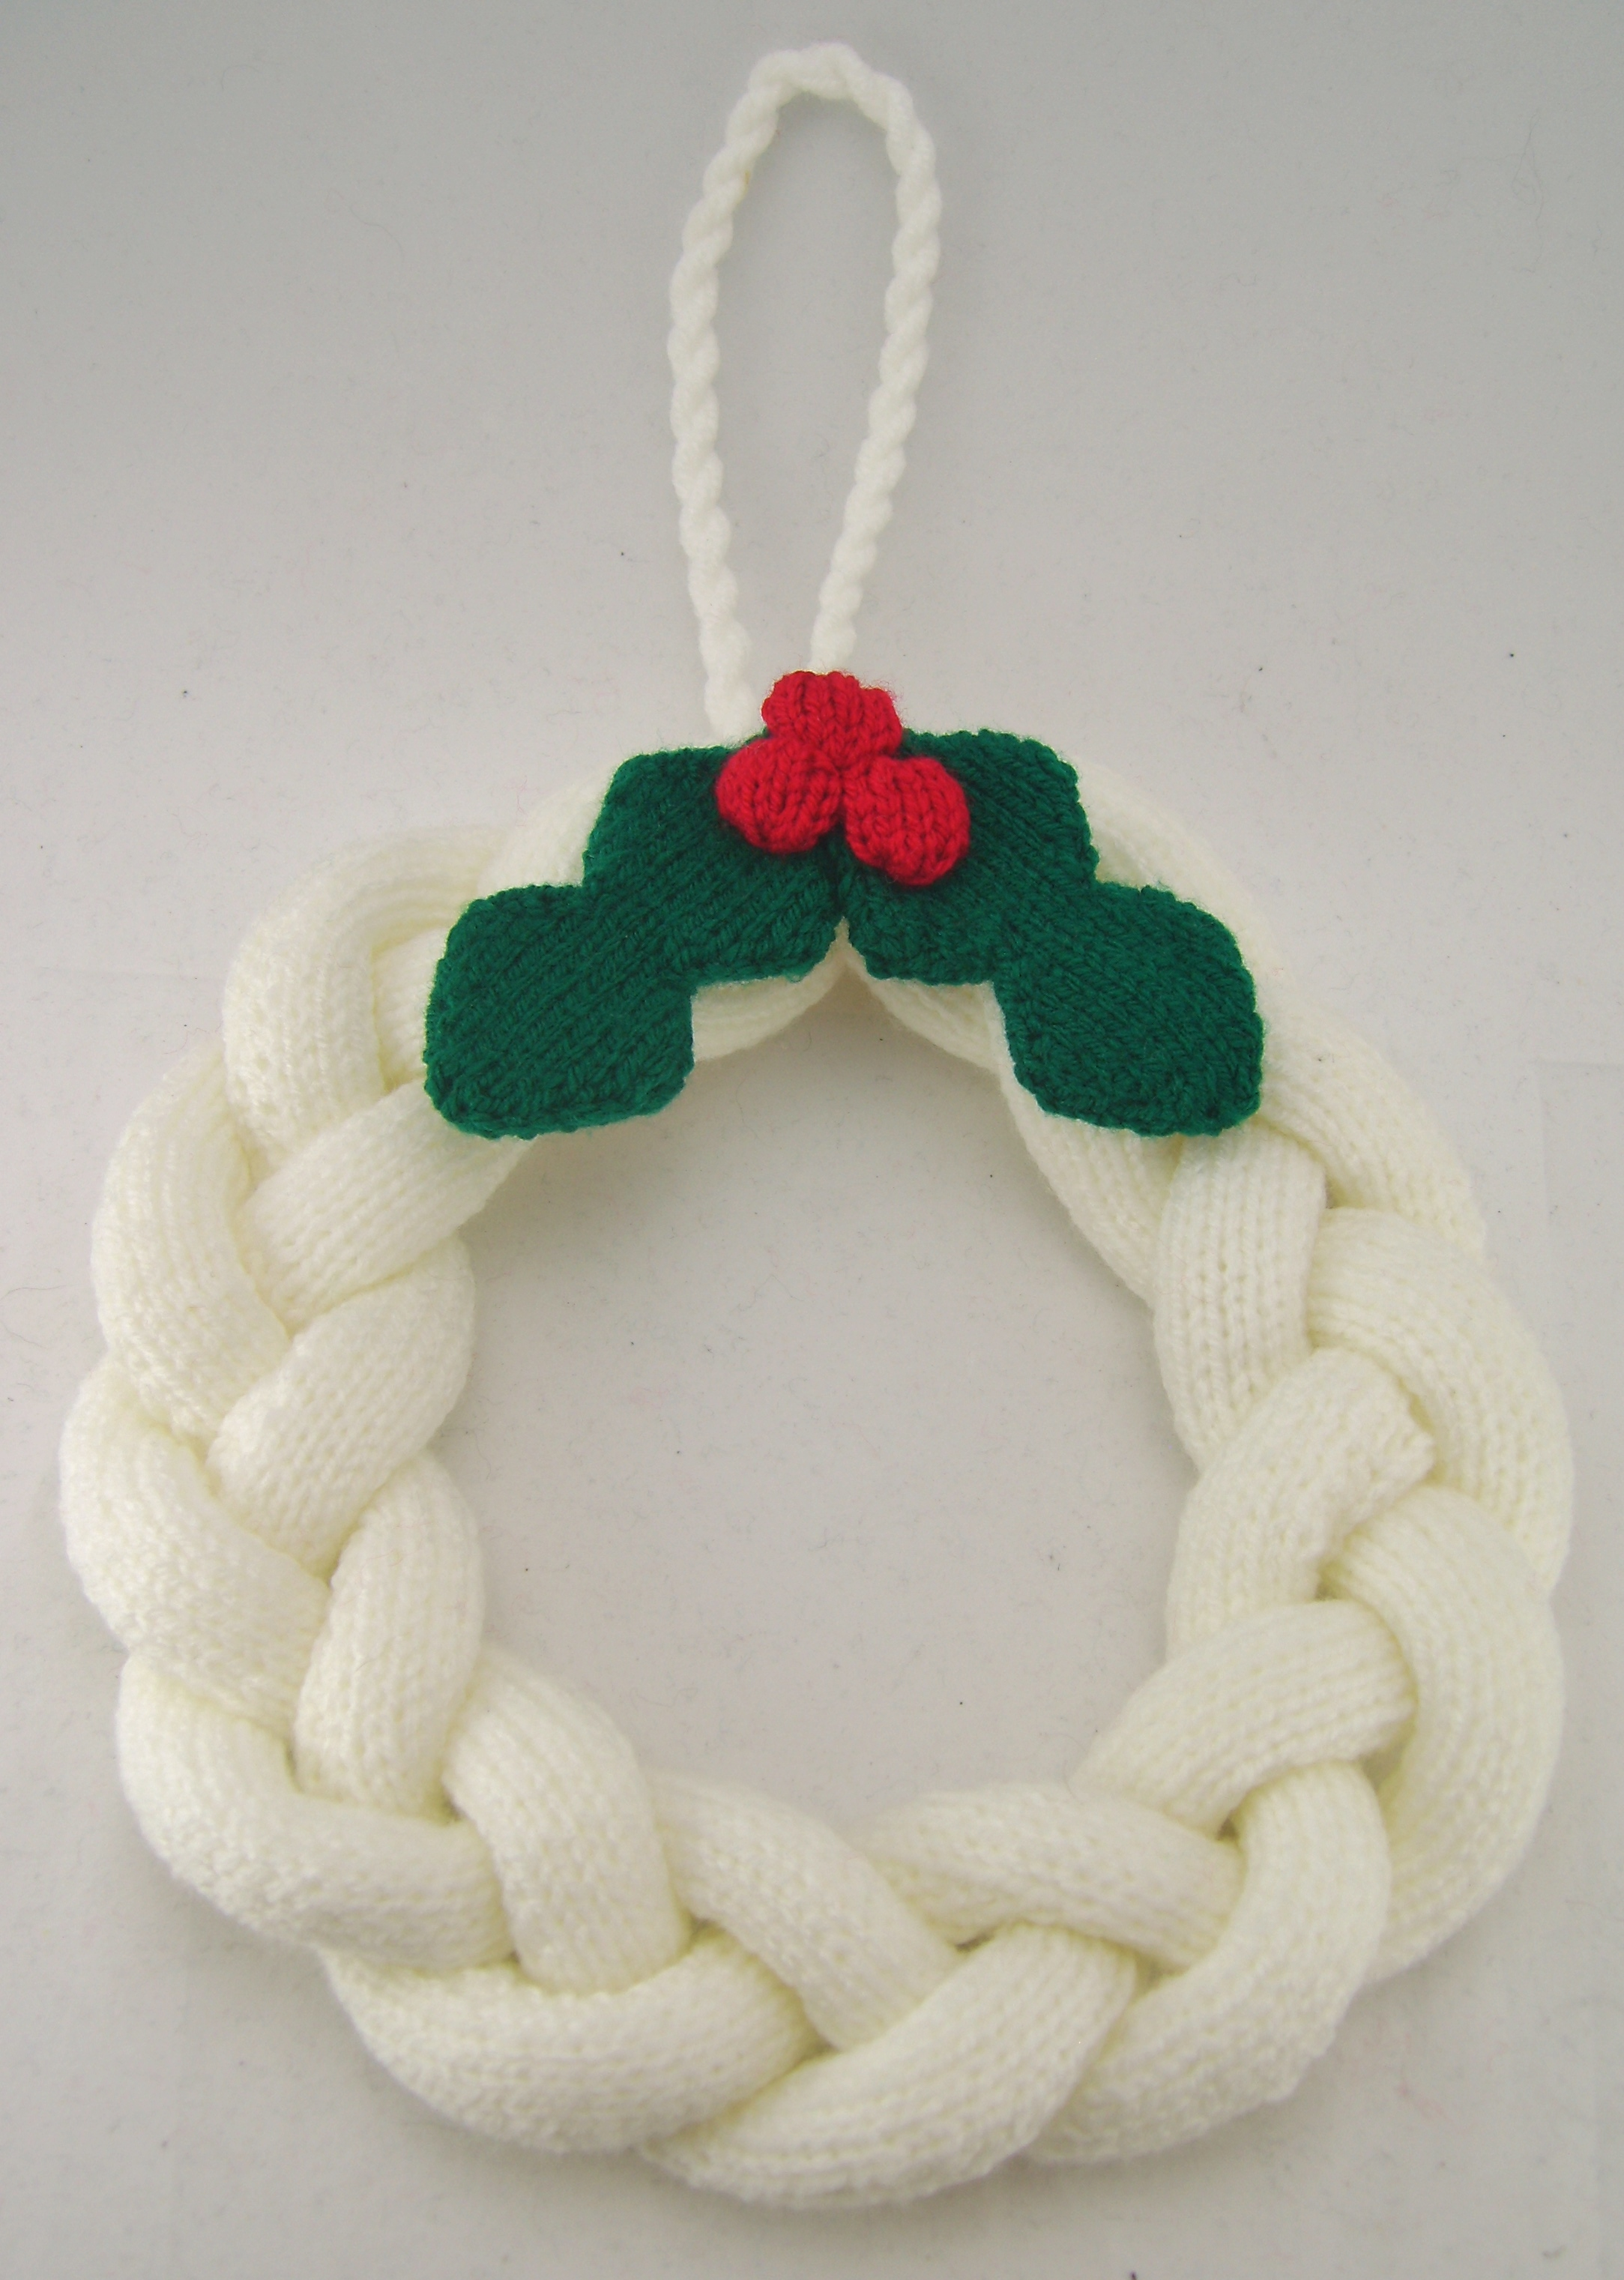 Simple Knitted Christmas Wreath Knitting Pattern Knitting by Post